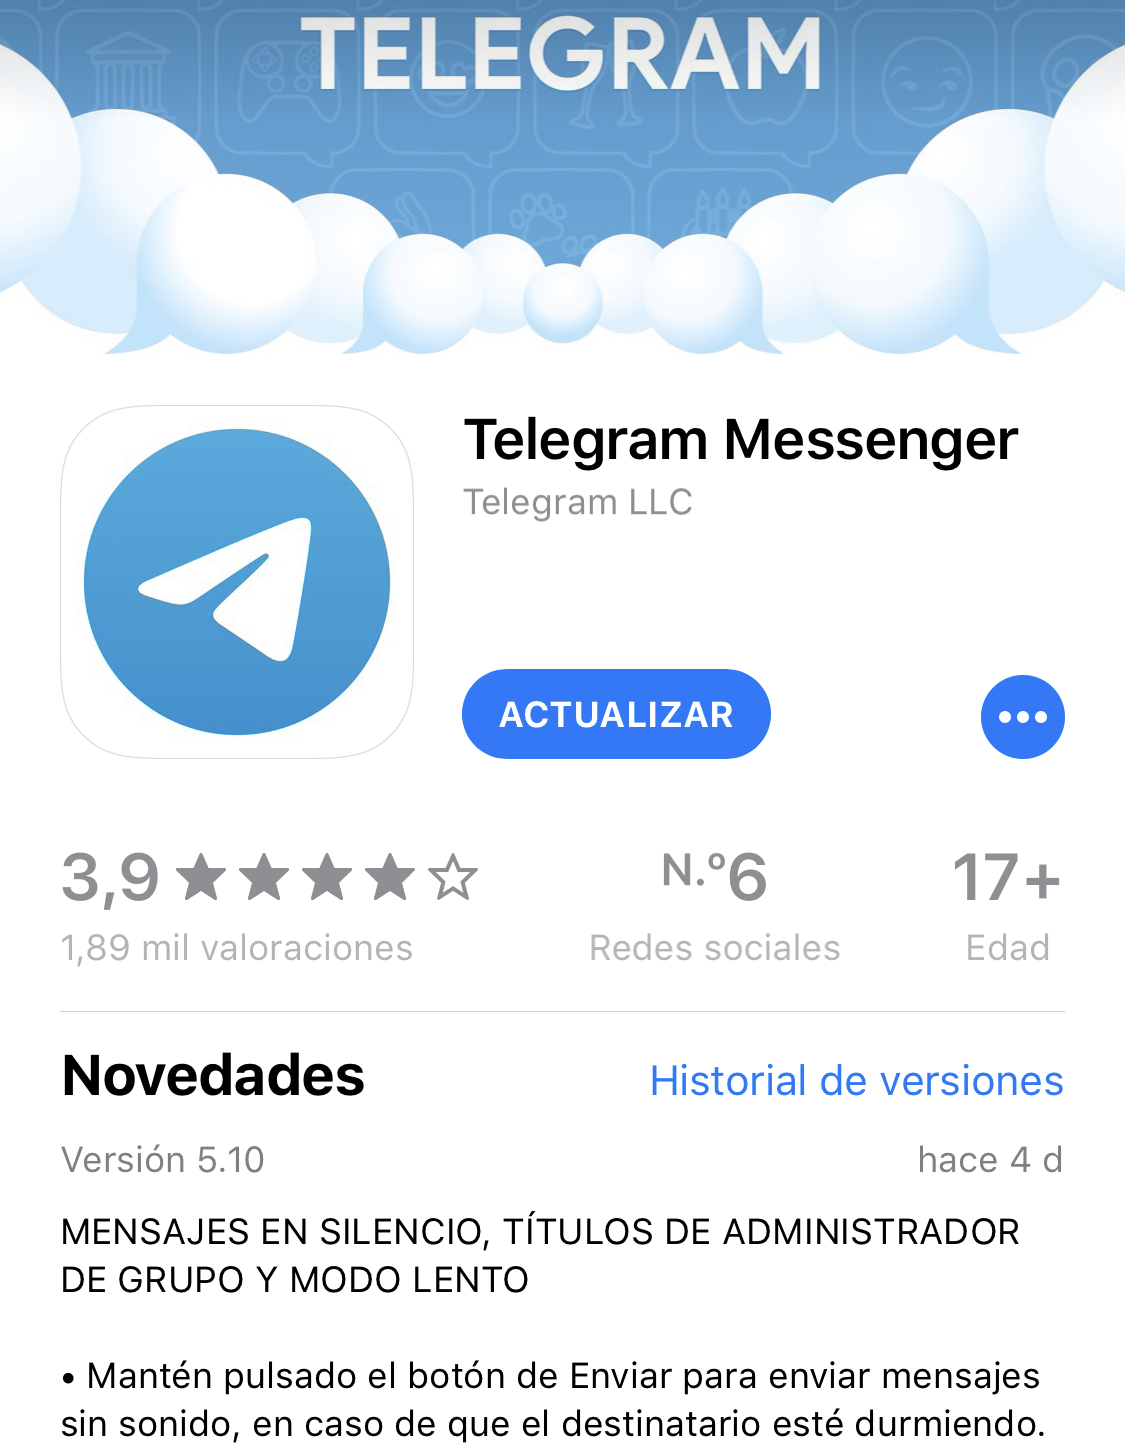 Version 5.10 de Telegram